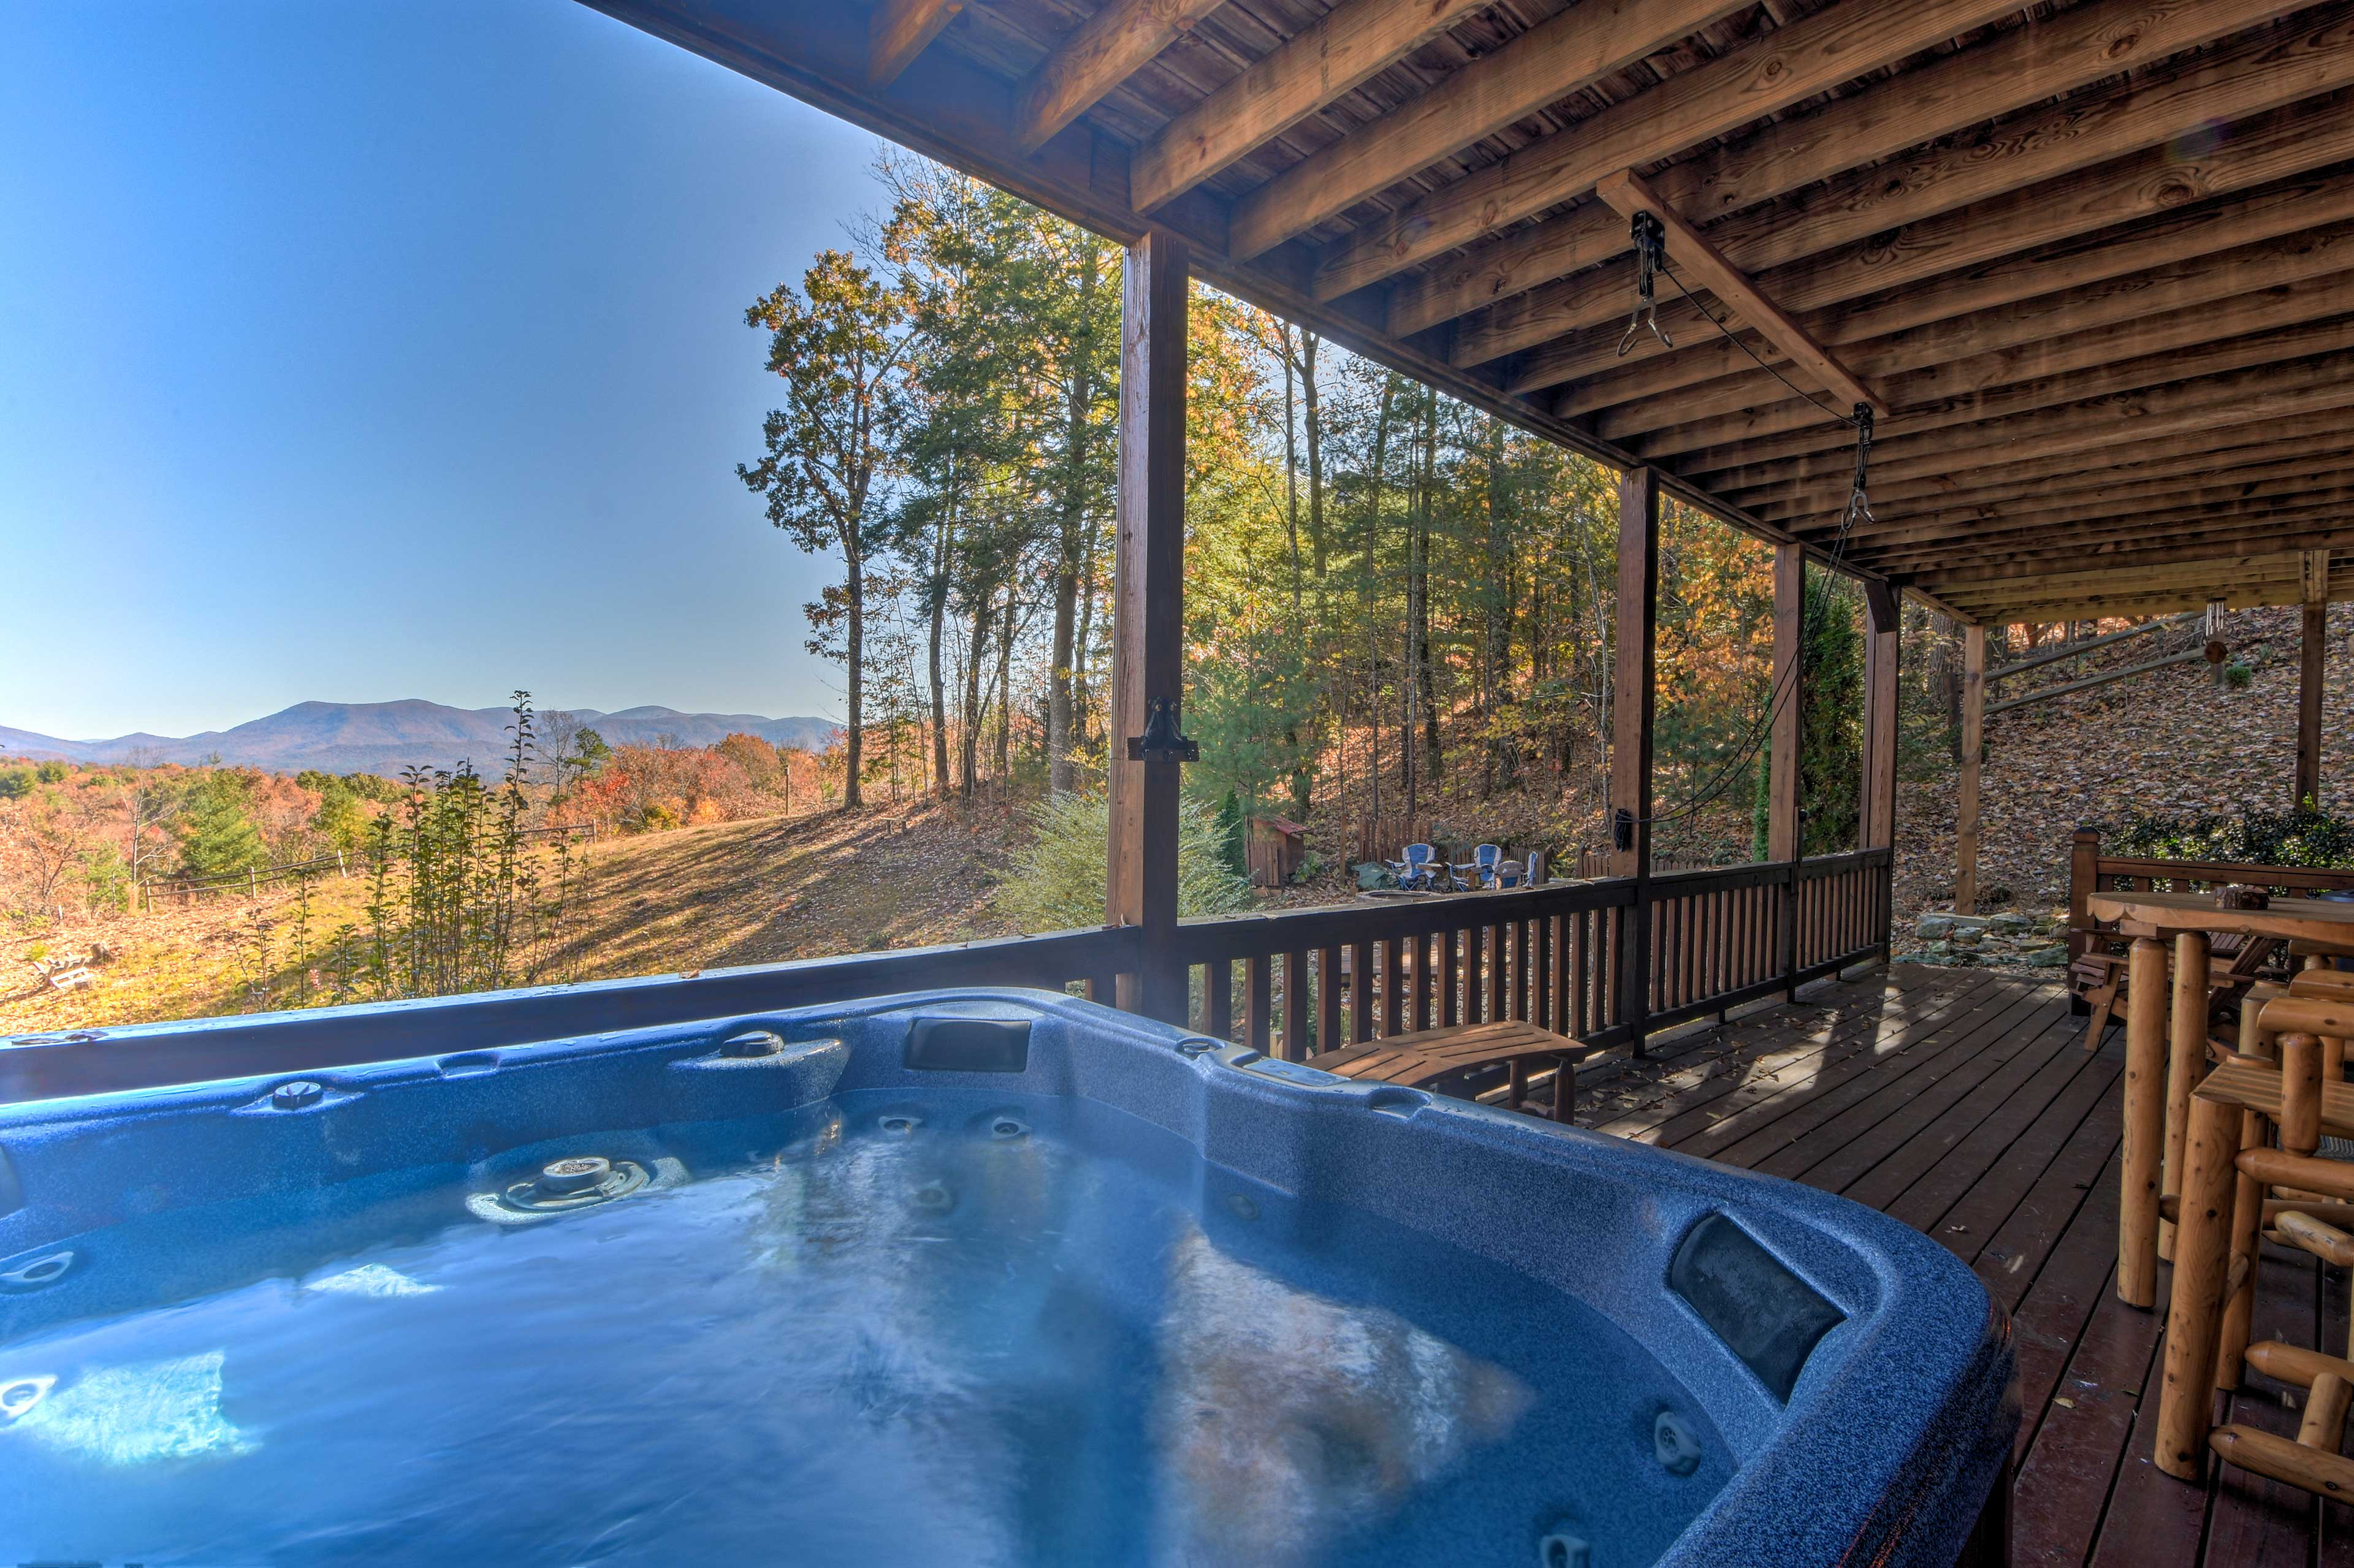 Soak in the hot tub and take in the stunning mountain views.